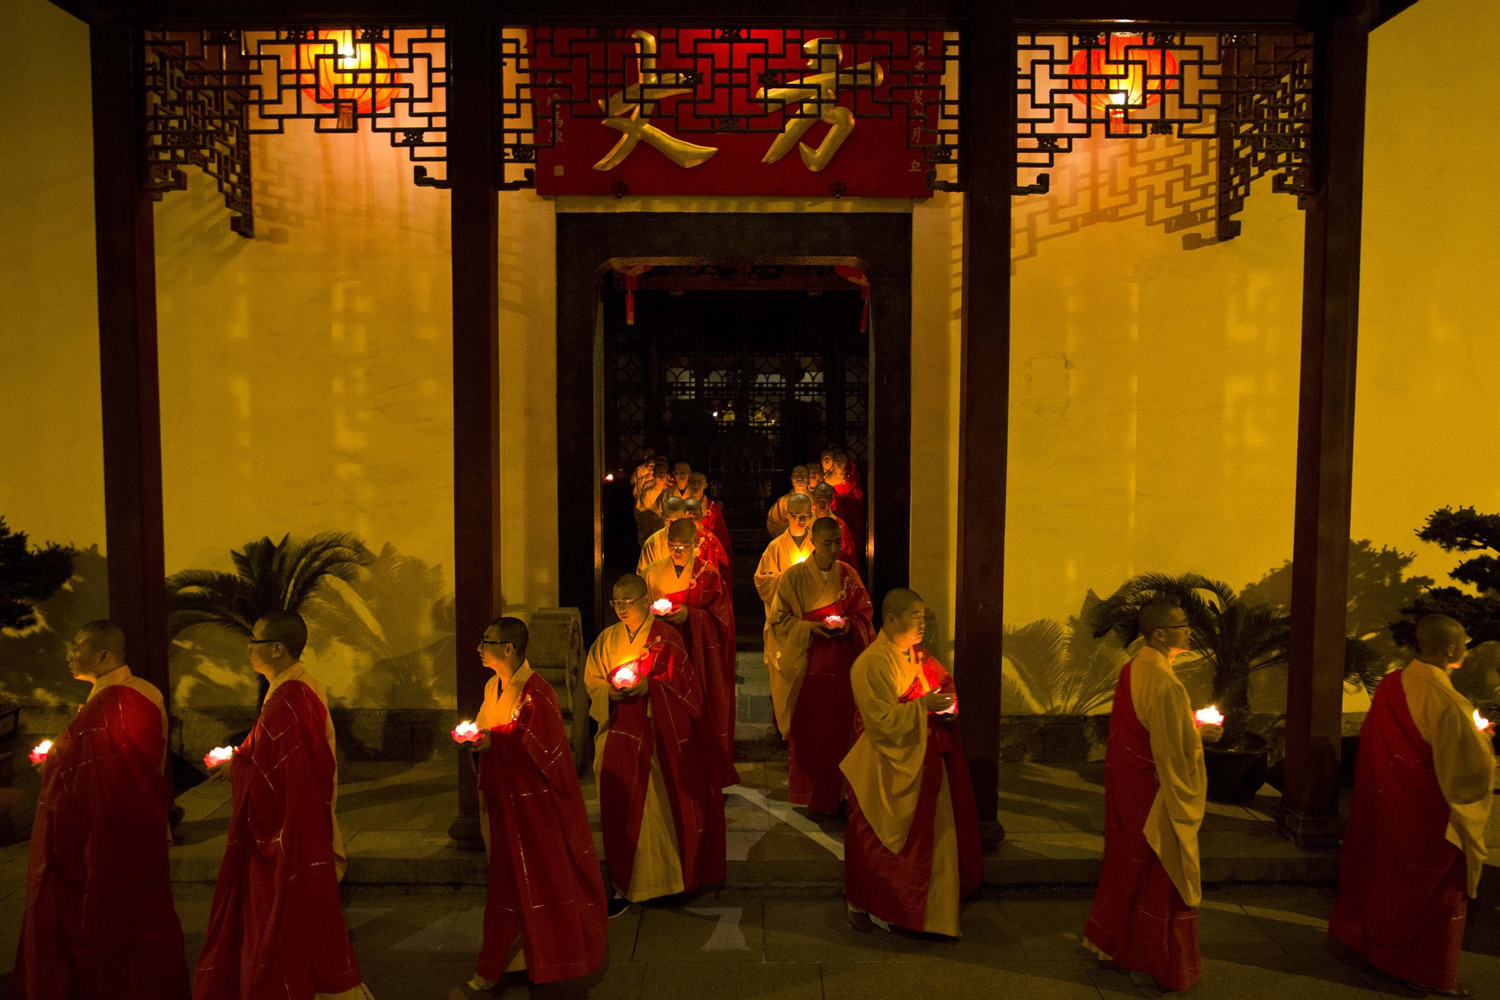 May 6, 2014. Monks hold candles as they pray during a ceremony to celebrate Buddha's birthday at the Yufo Temple in Shanghai.